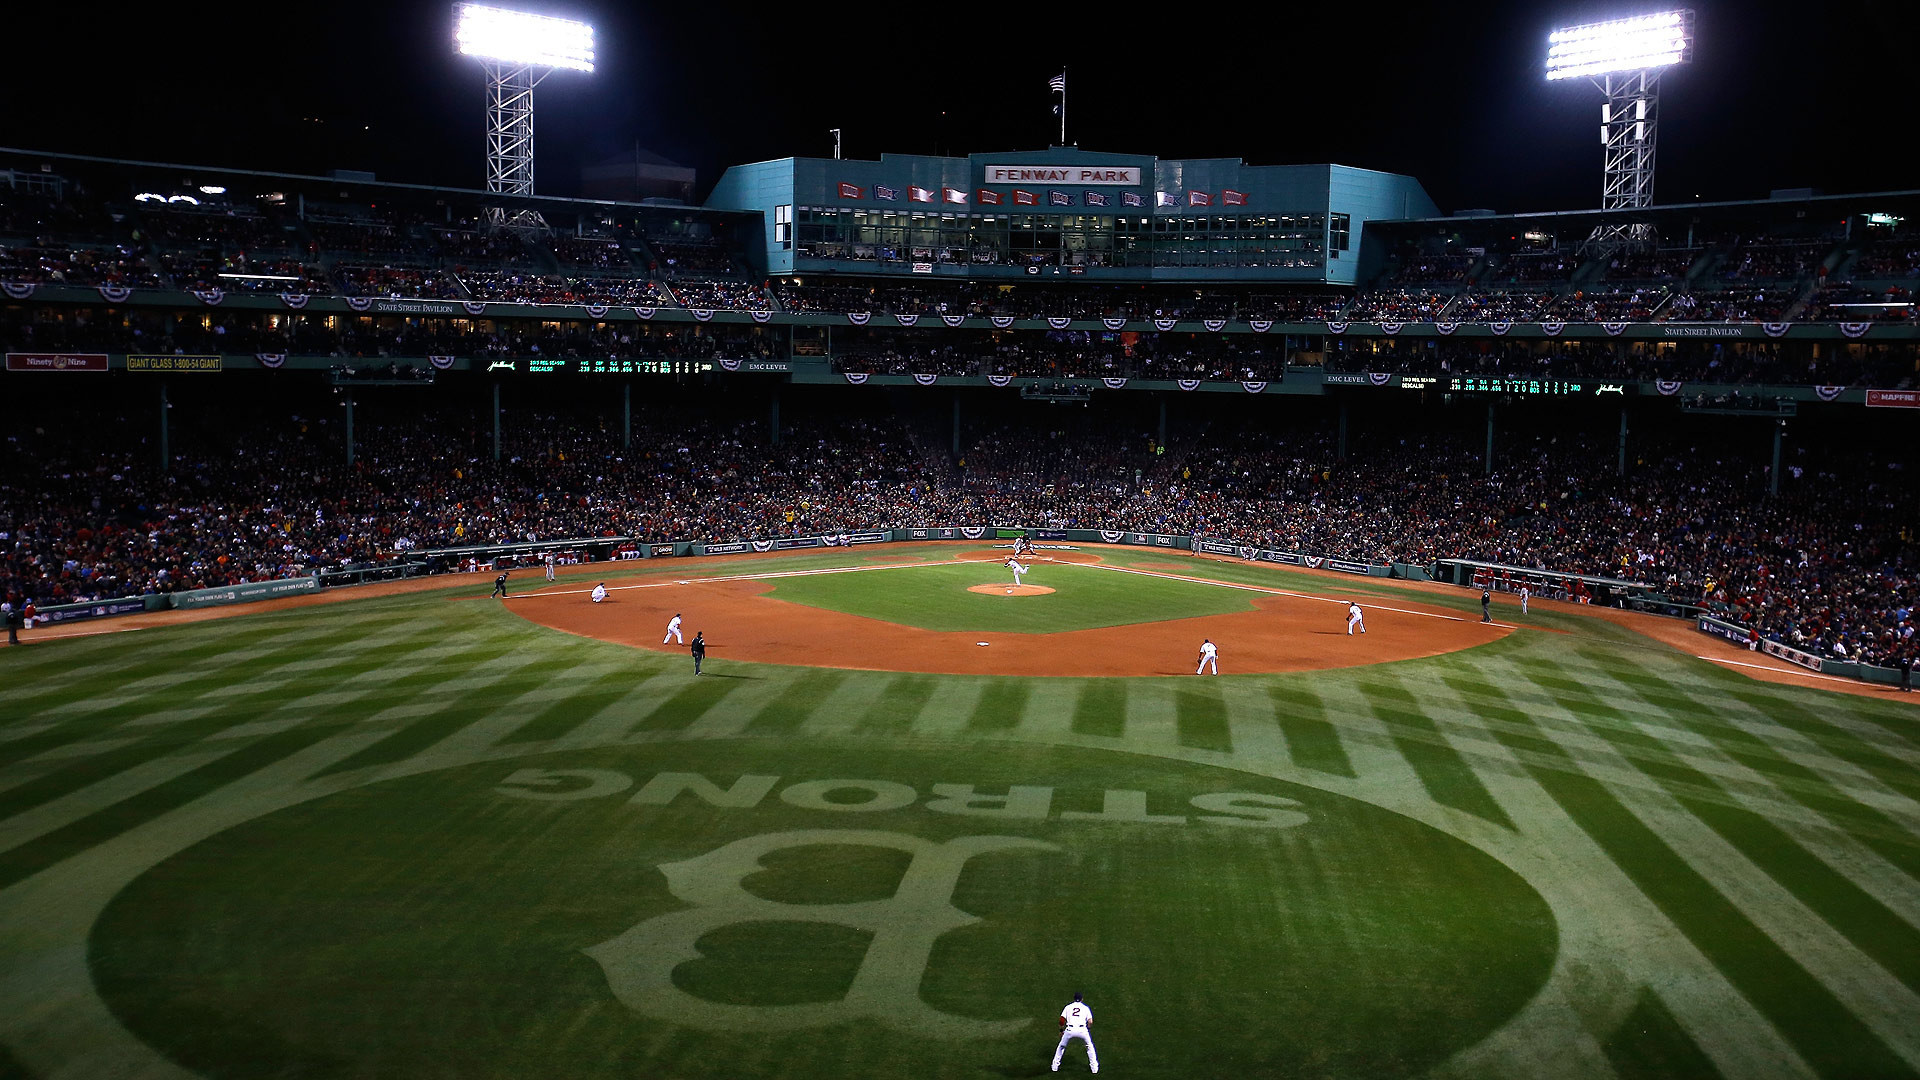 1920x1080 3000x1958 Boston Red Sox Newsfeed: Breaking News, Pre-Game Reports, Recaps  & More